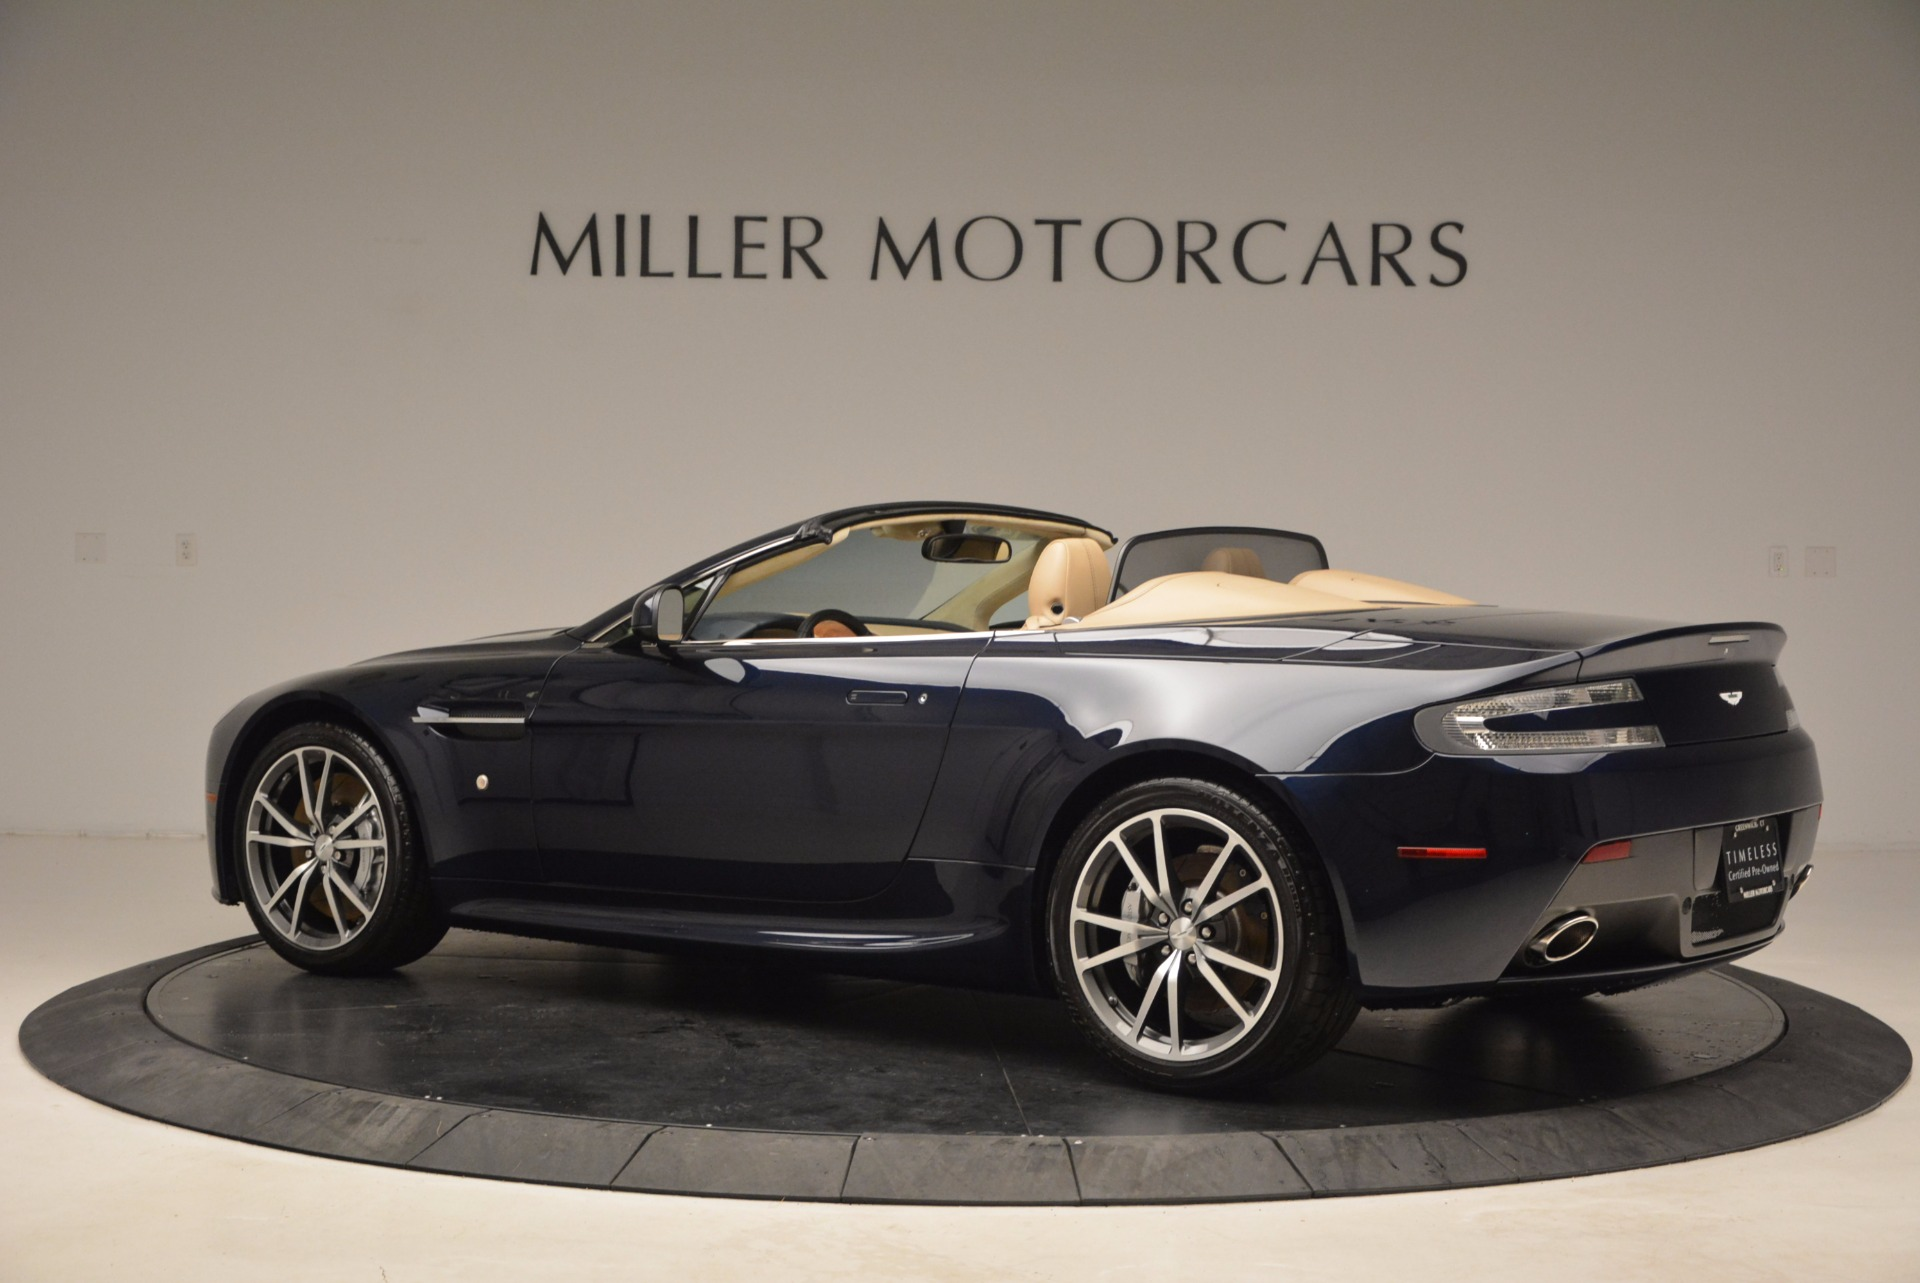 Used 2014 Aston Martin V8 Vantage Roadster For Sale In Greenwich, CT. Alfa Romeo of Greenwich, 7282 1623_p4